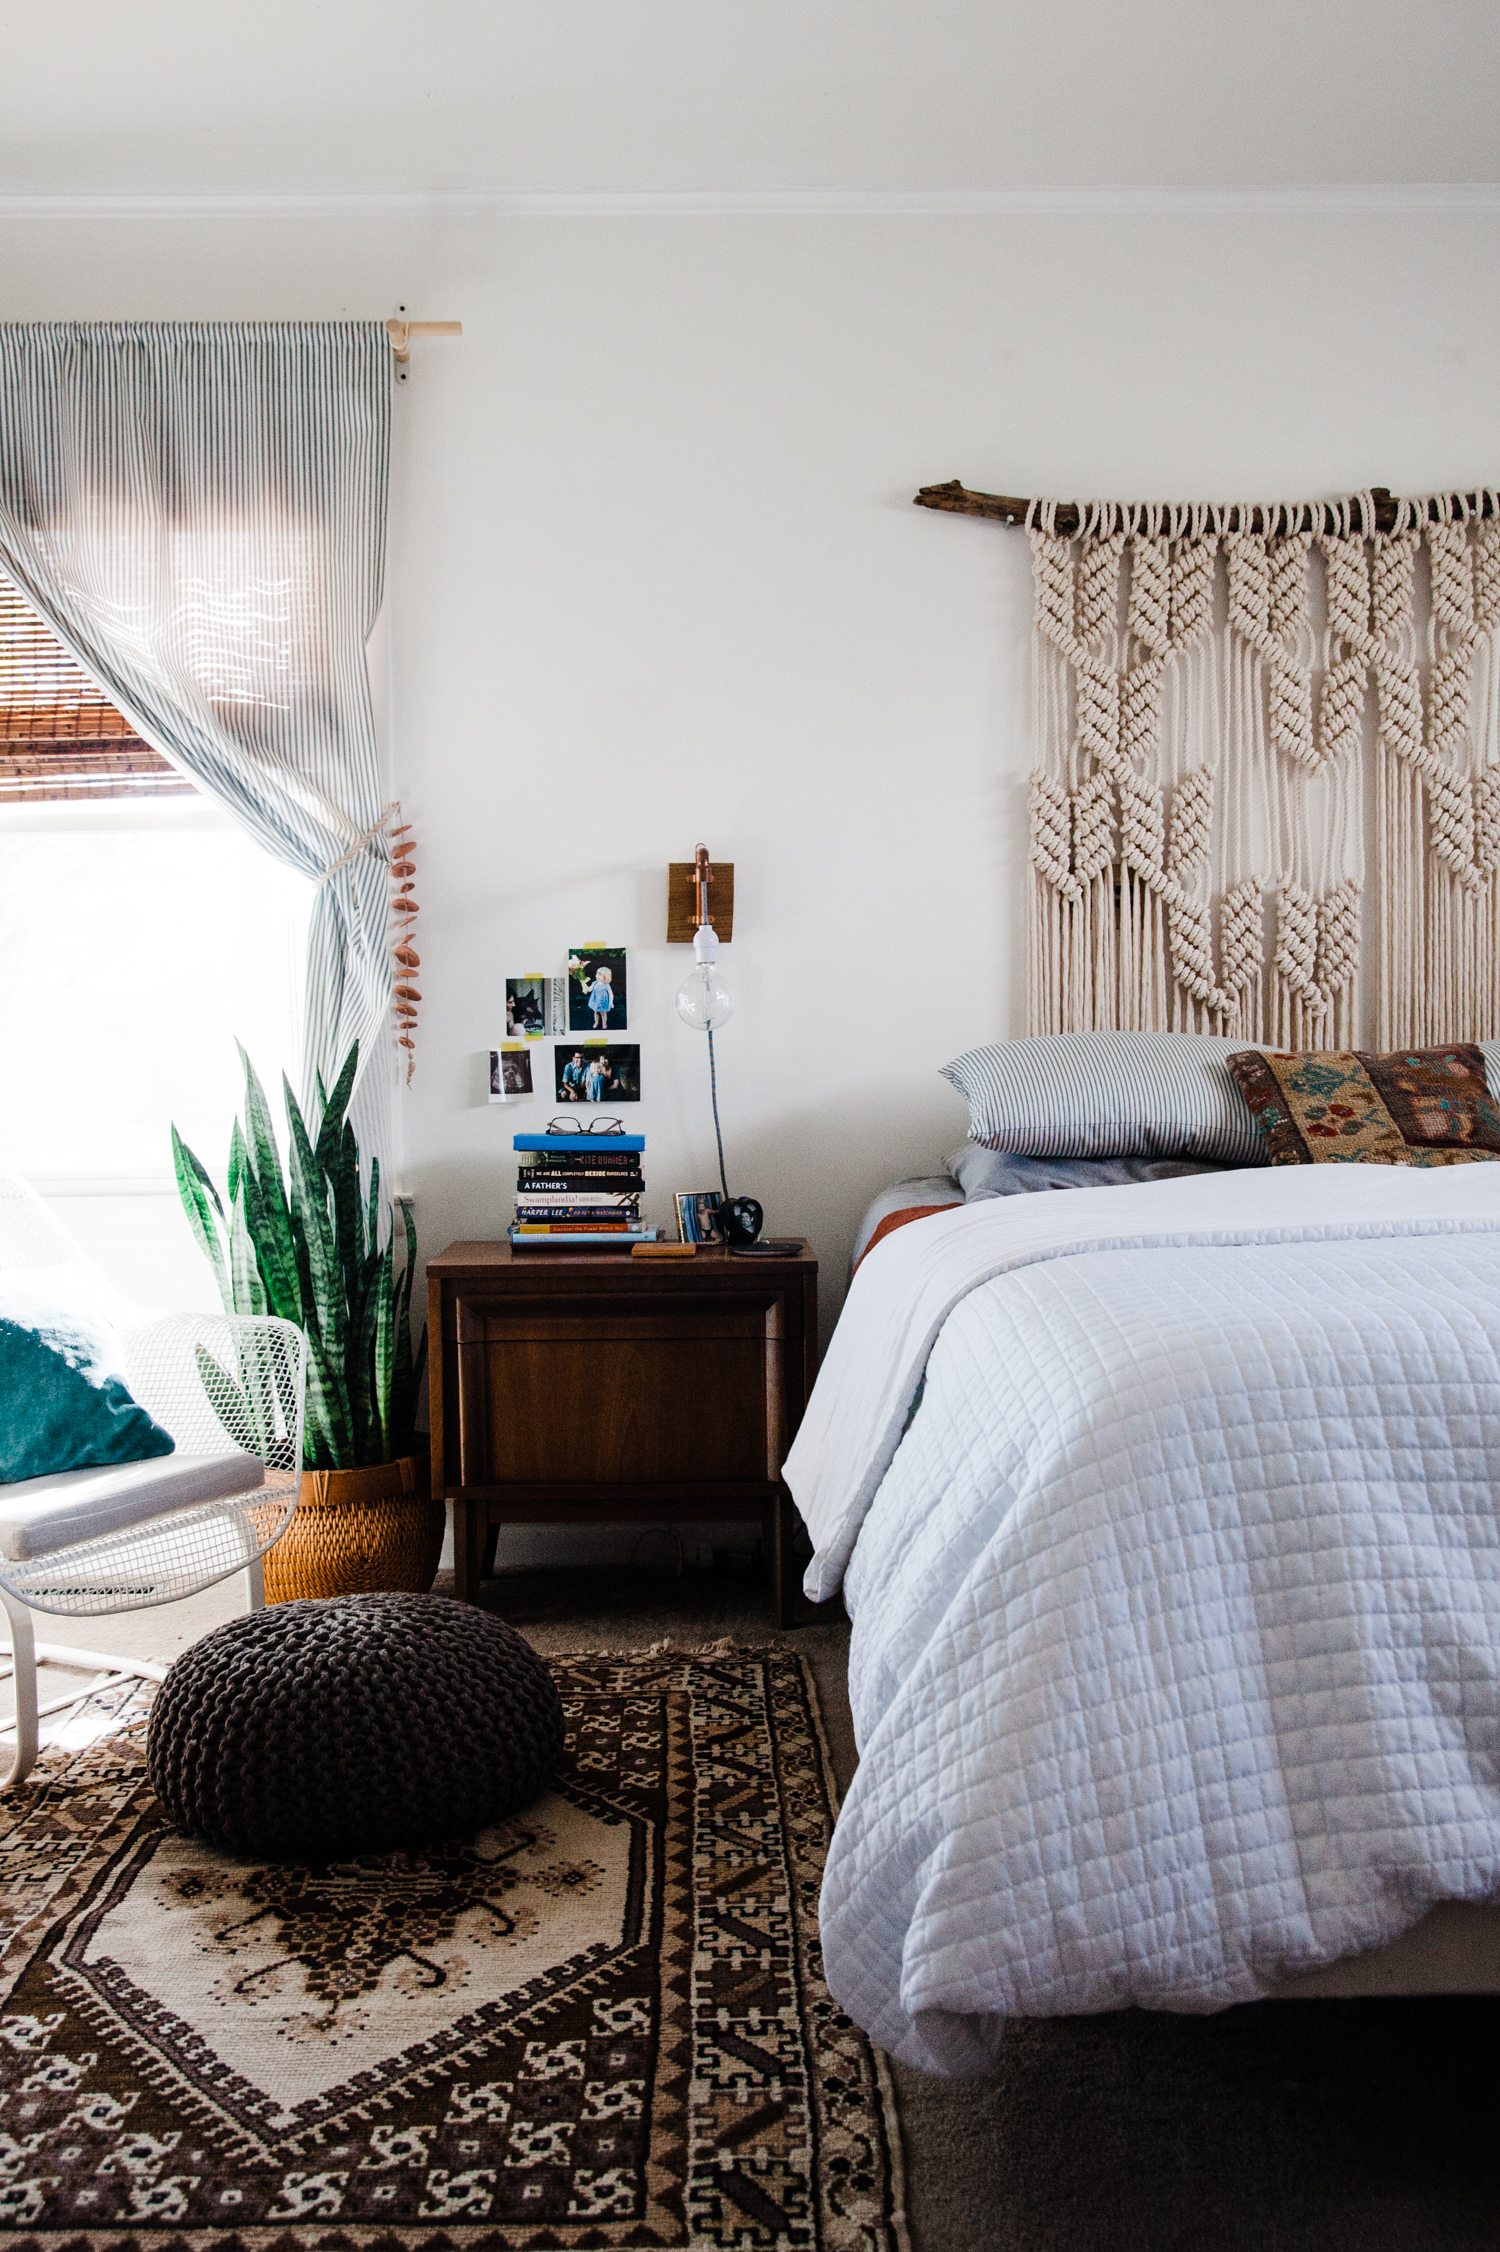 Boho Bedroom The Perks Of Decorating Slowly Palmer S Neutral Boho Bedroom